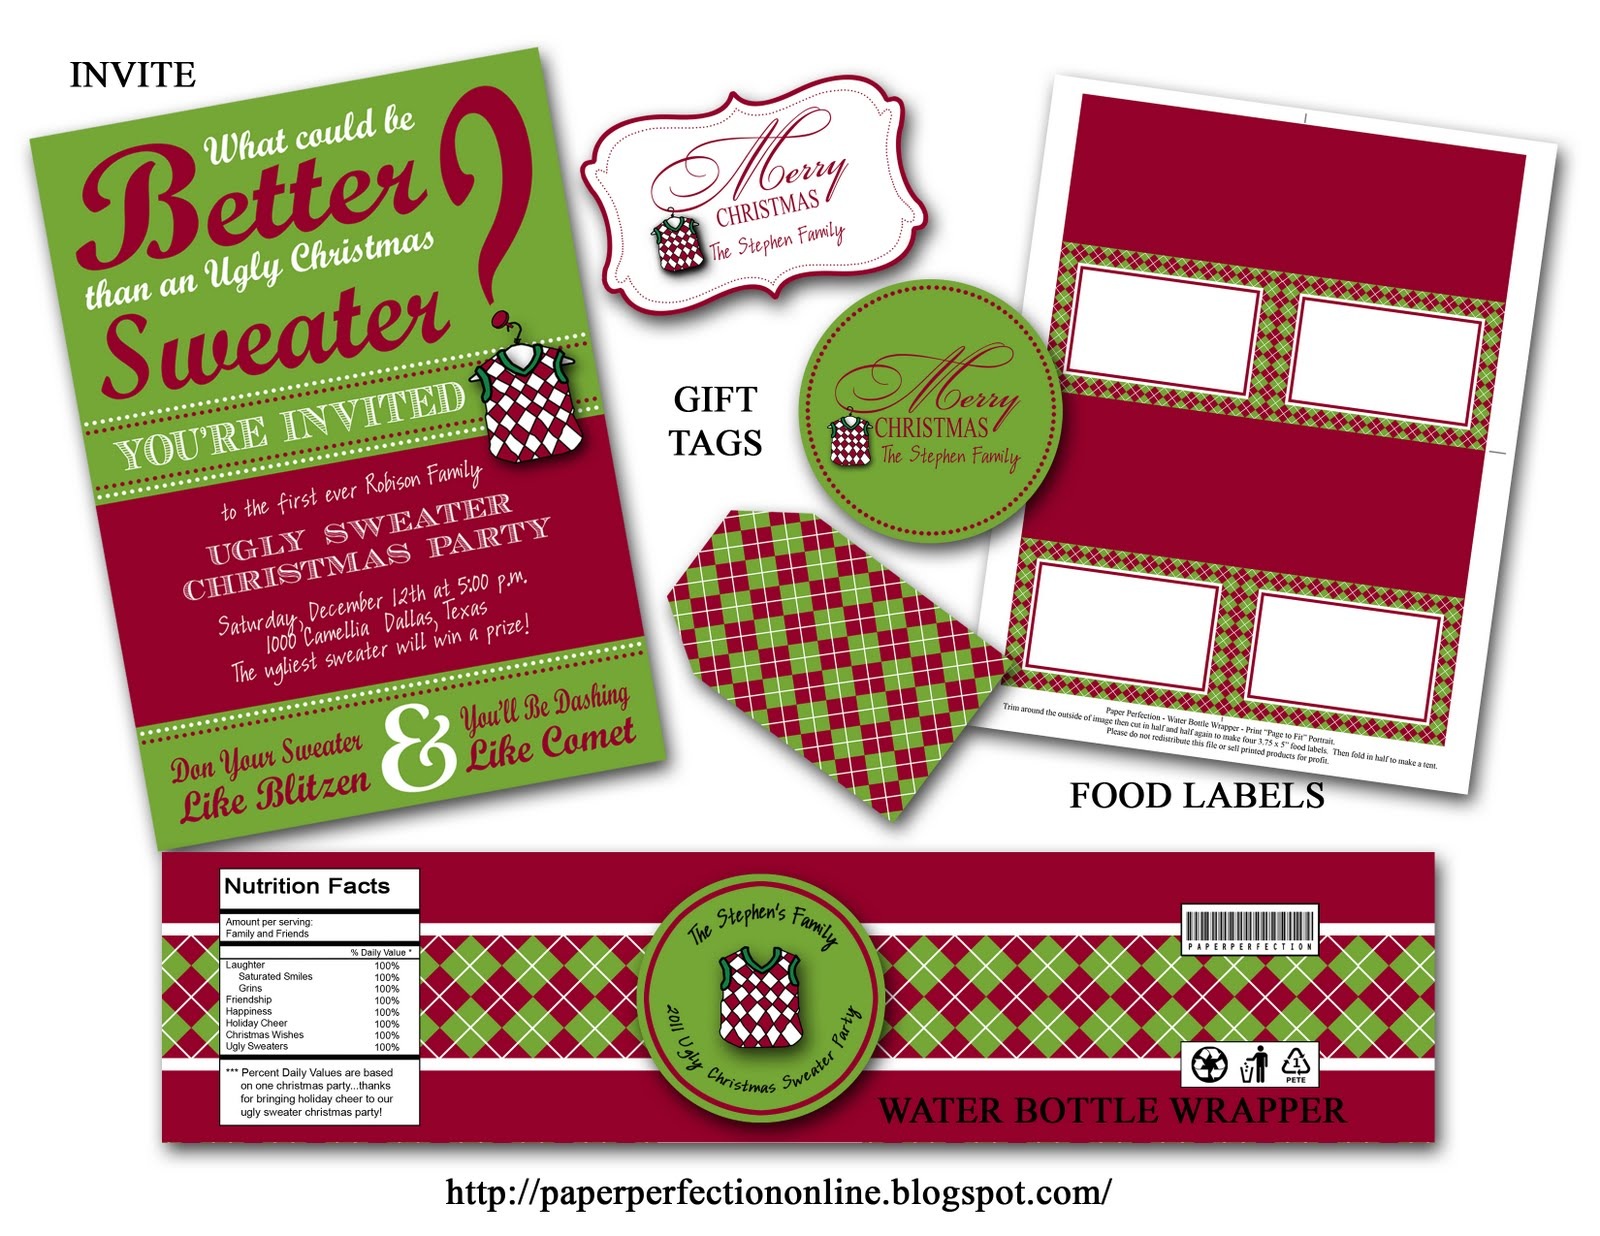 1086e2b16a94c1 If you are needing a special invite for your upcoming Christmas events like  an